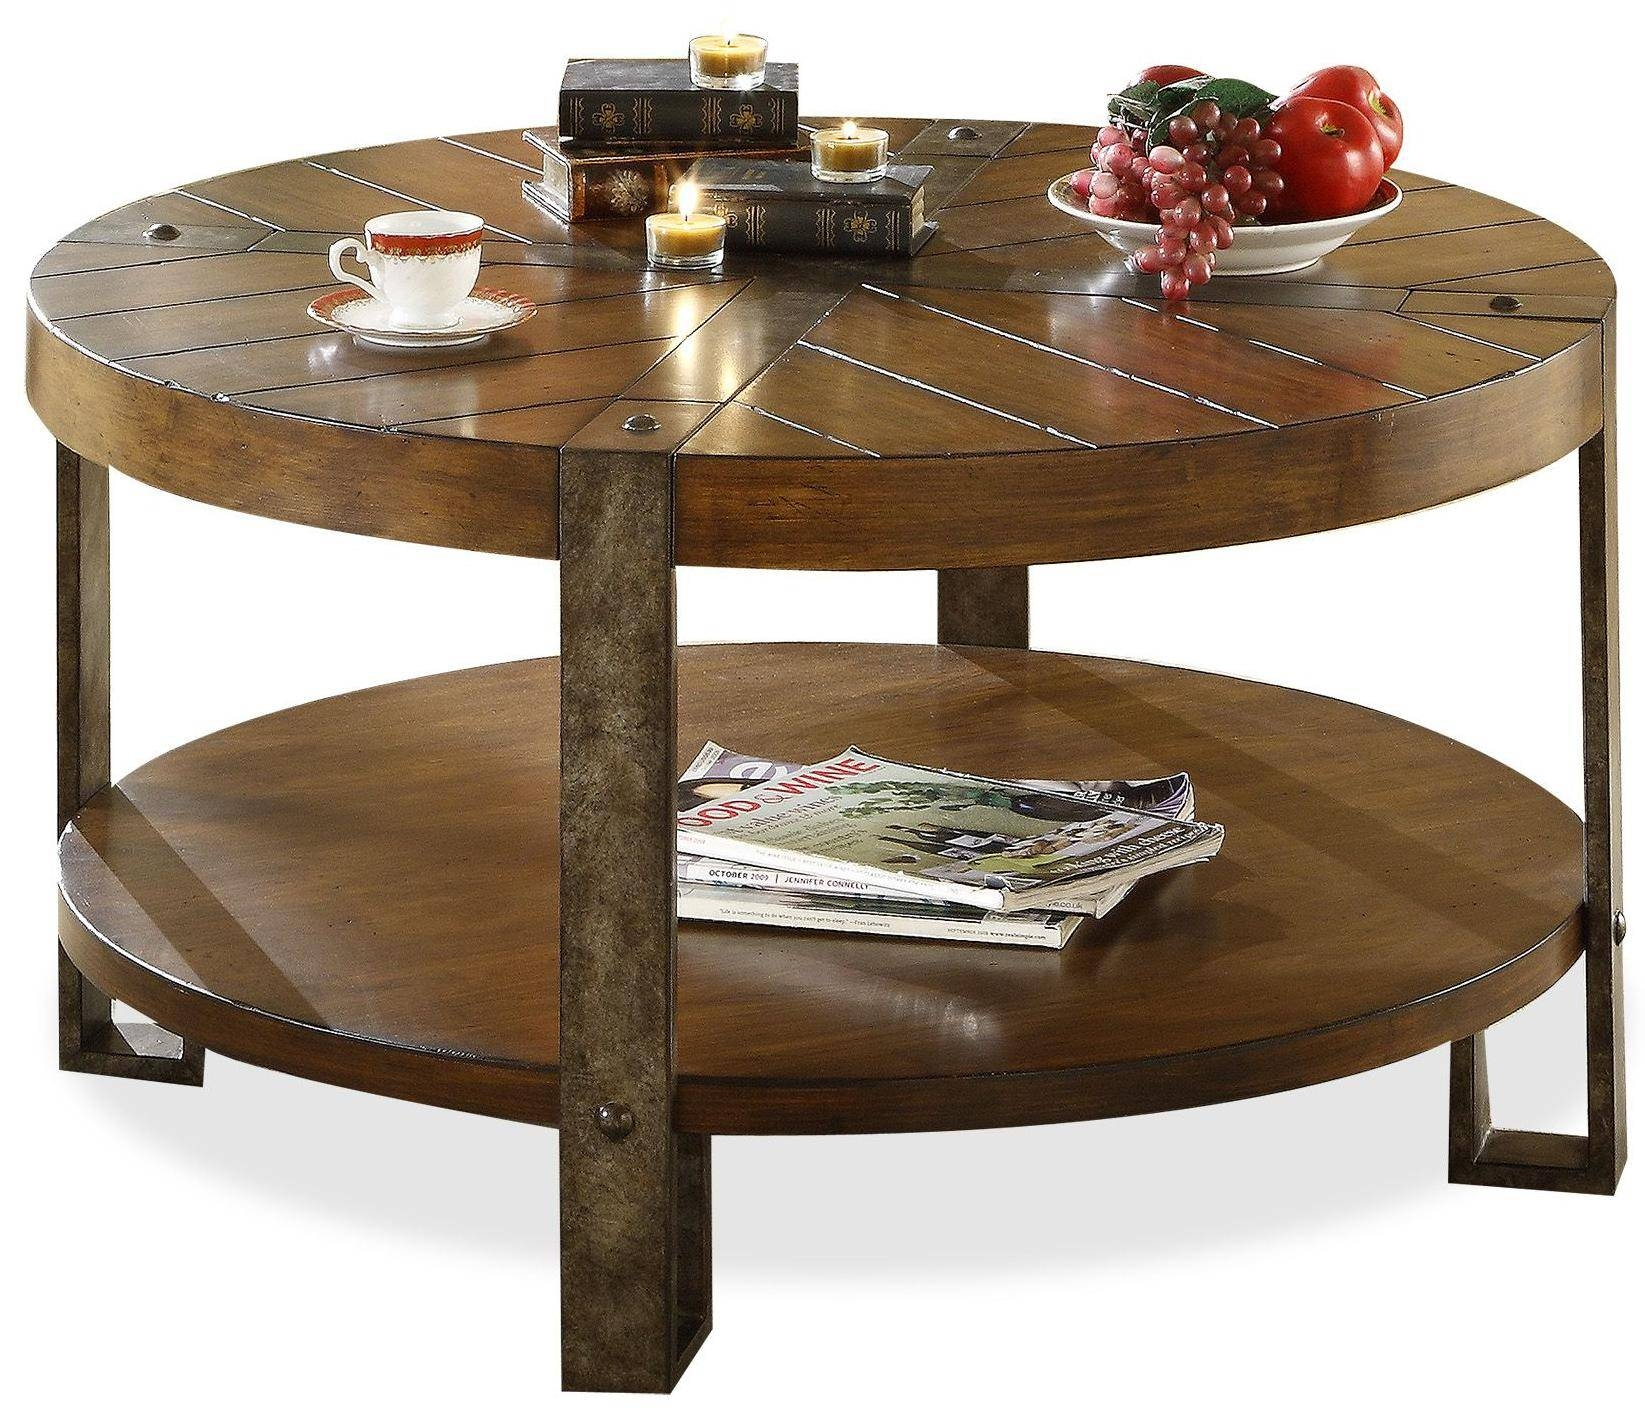 Low Side Table Coffee Table Glass And Metal – 4 Tips In Choosing Inside Small Circular Coffee Table (View 13 of 30)